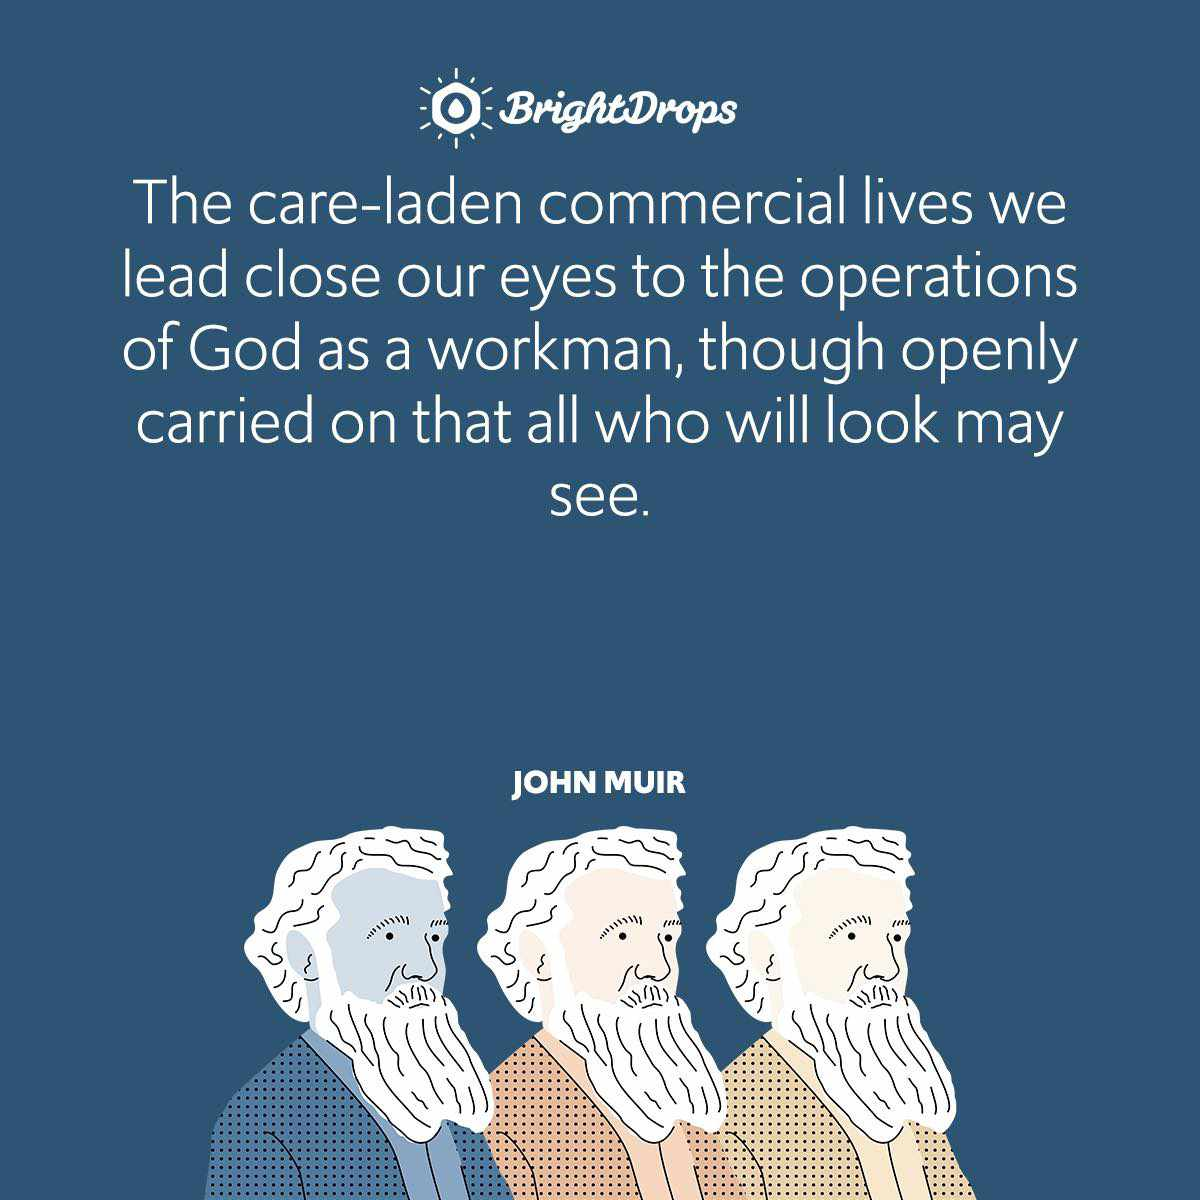 The care-laden commercial lives we lead close our eyes to the operations of God as a workman, though openly carried on that all who will look may see.